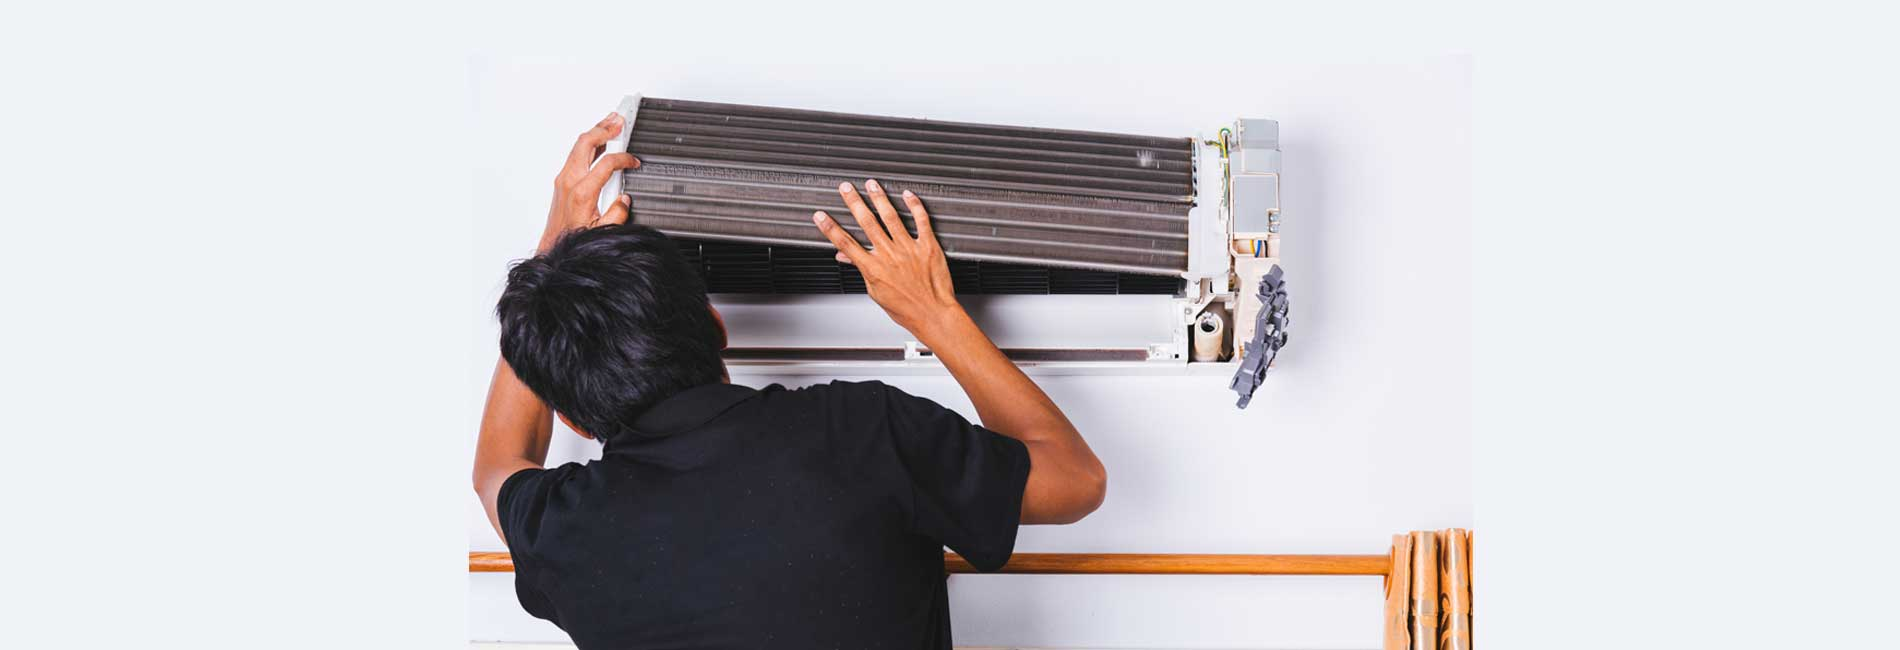 Air Condition Service in Vepery